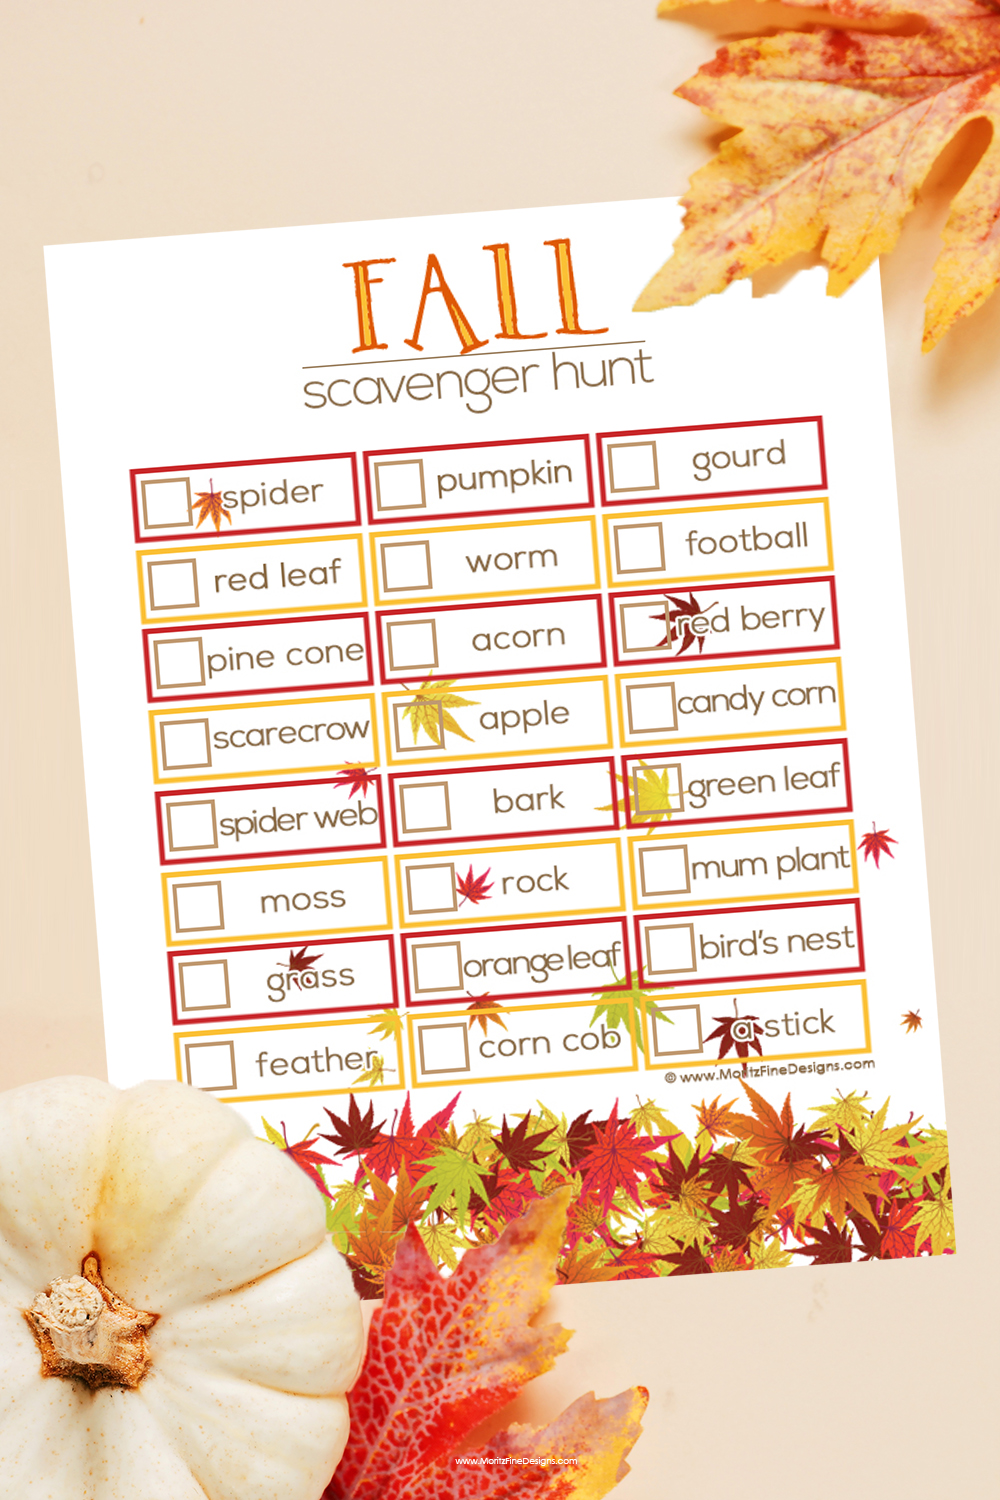 Fall Scavenger Hunt for Kids is the perfect activity to send the kids out to explore on a beautiful fall day.